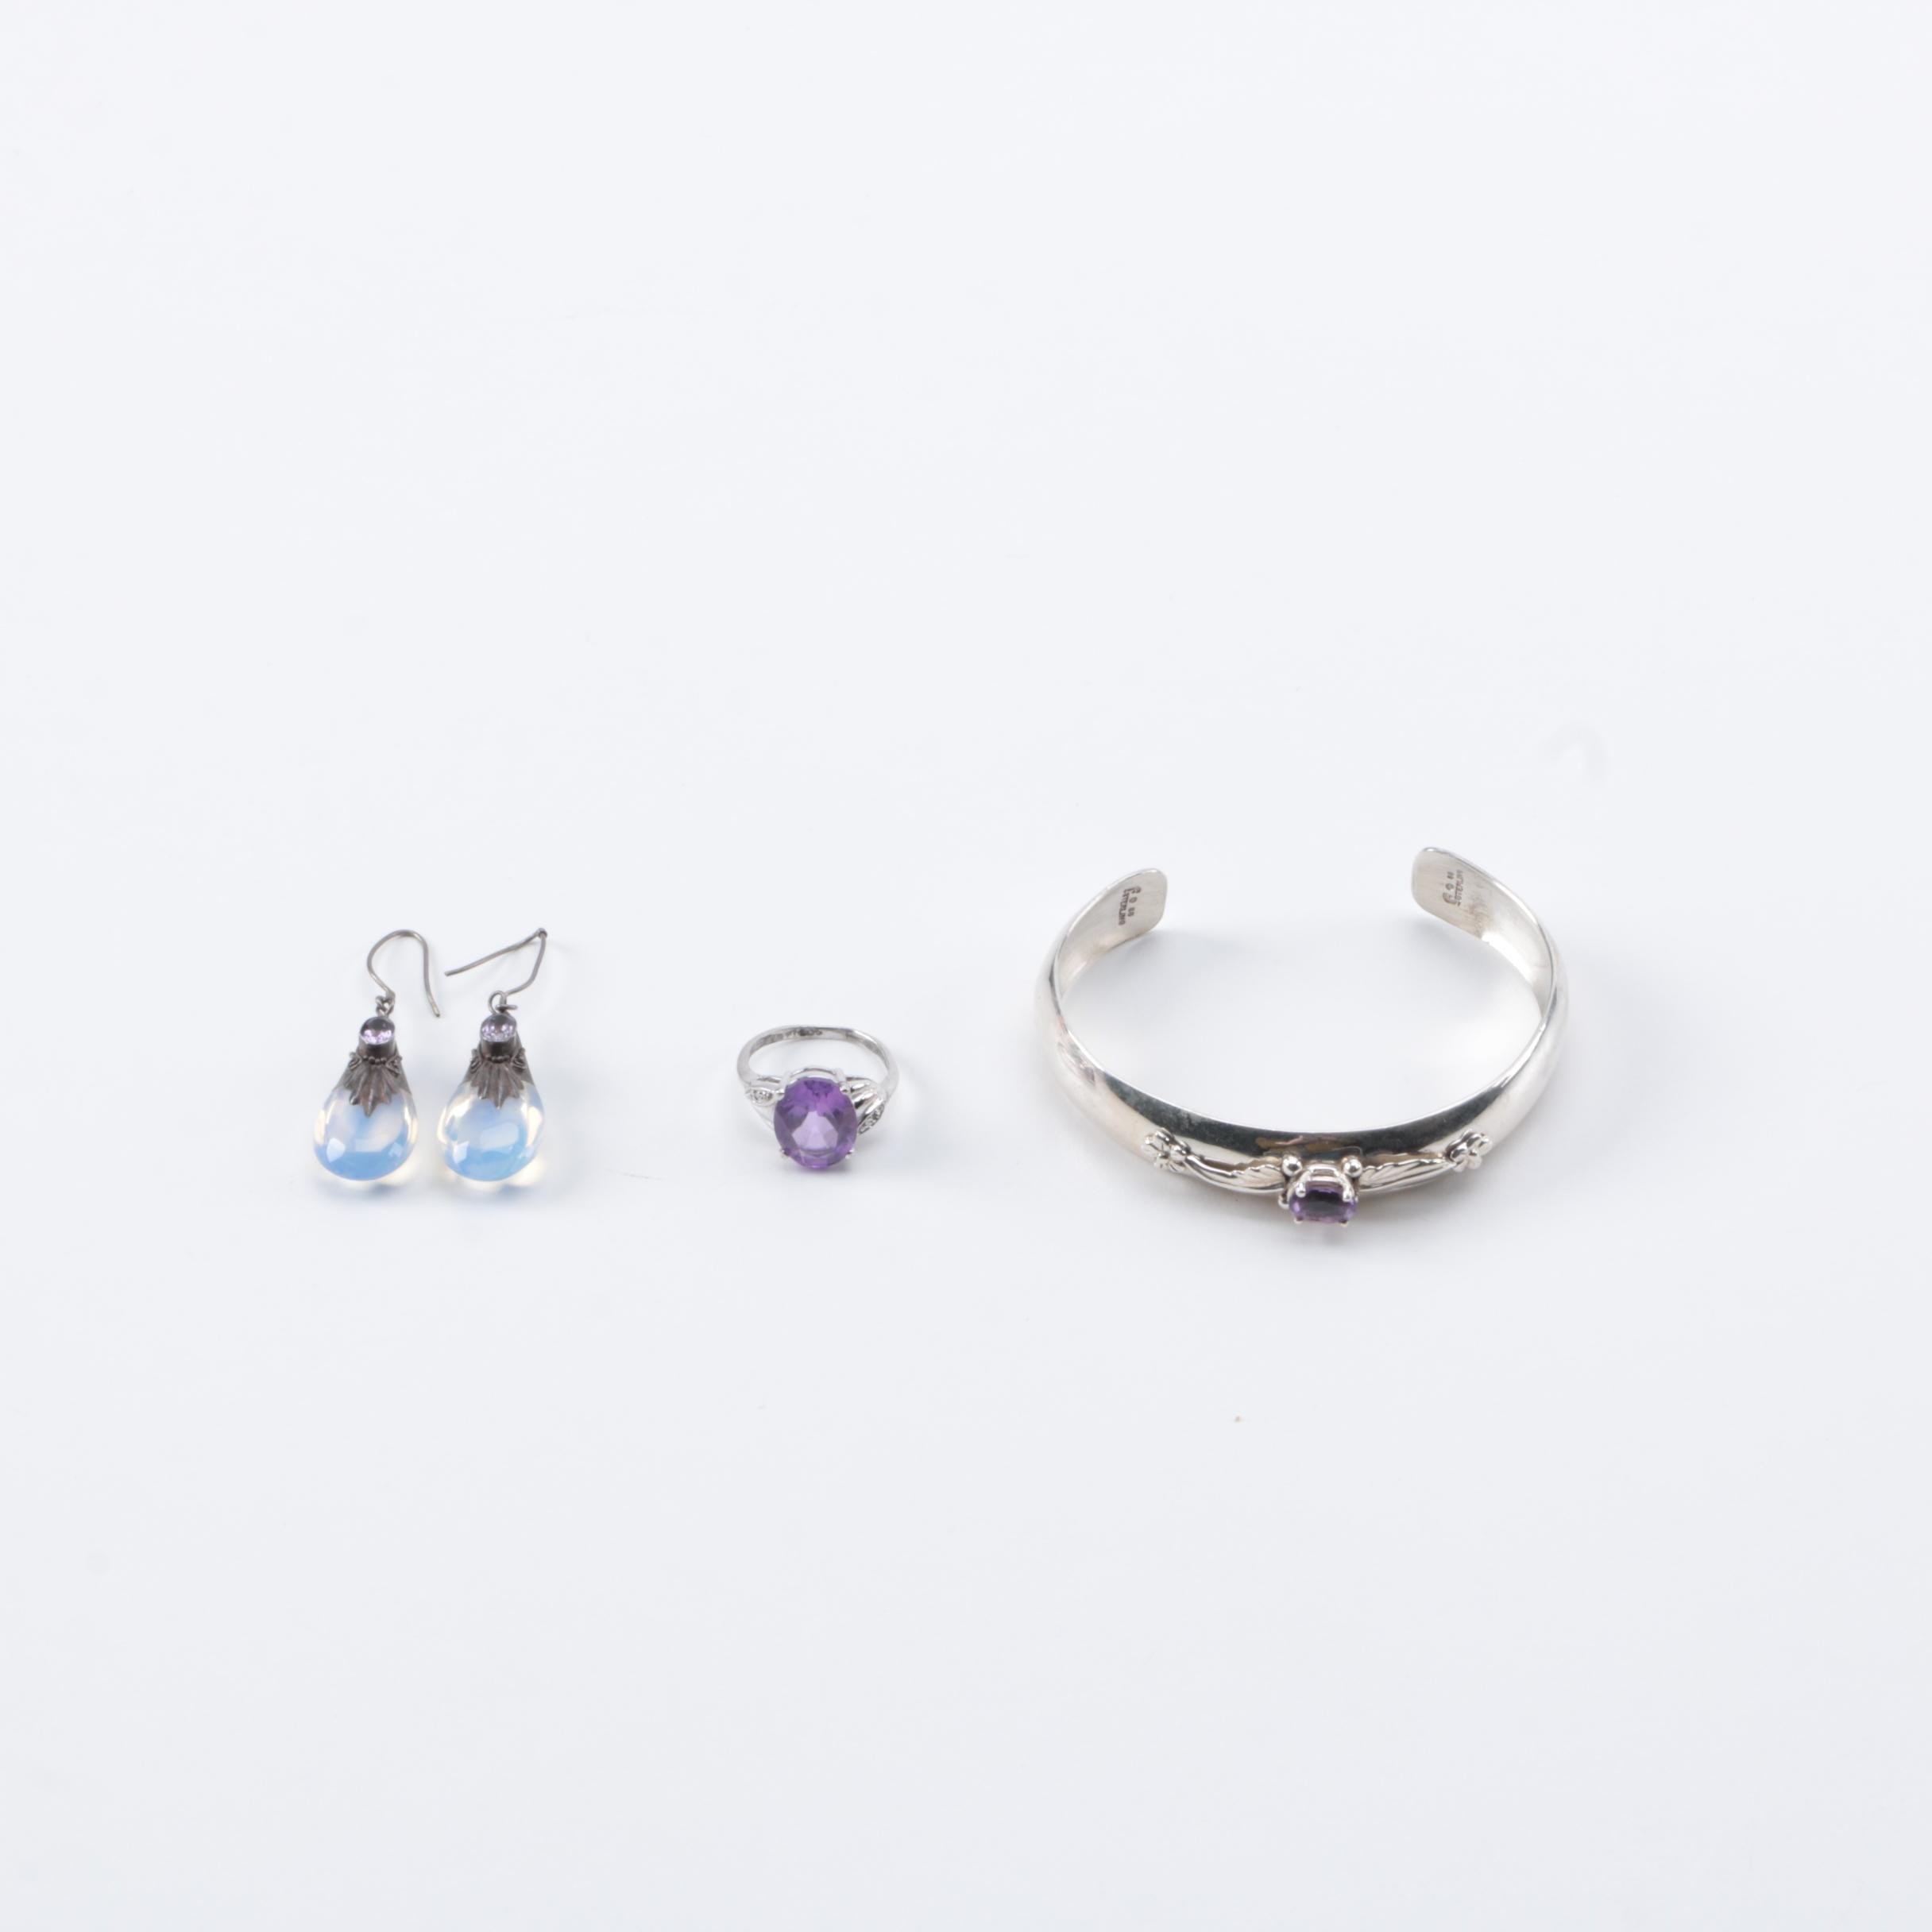 Sterling Silver Jewelry With Accents Including Amethyst and Diamonds